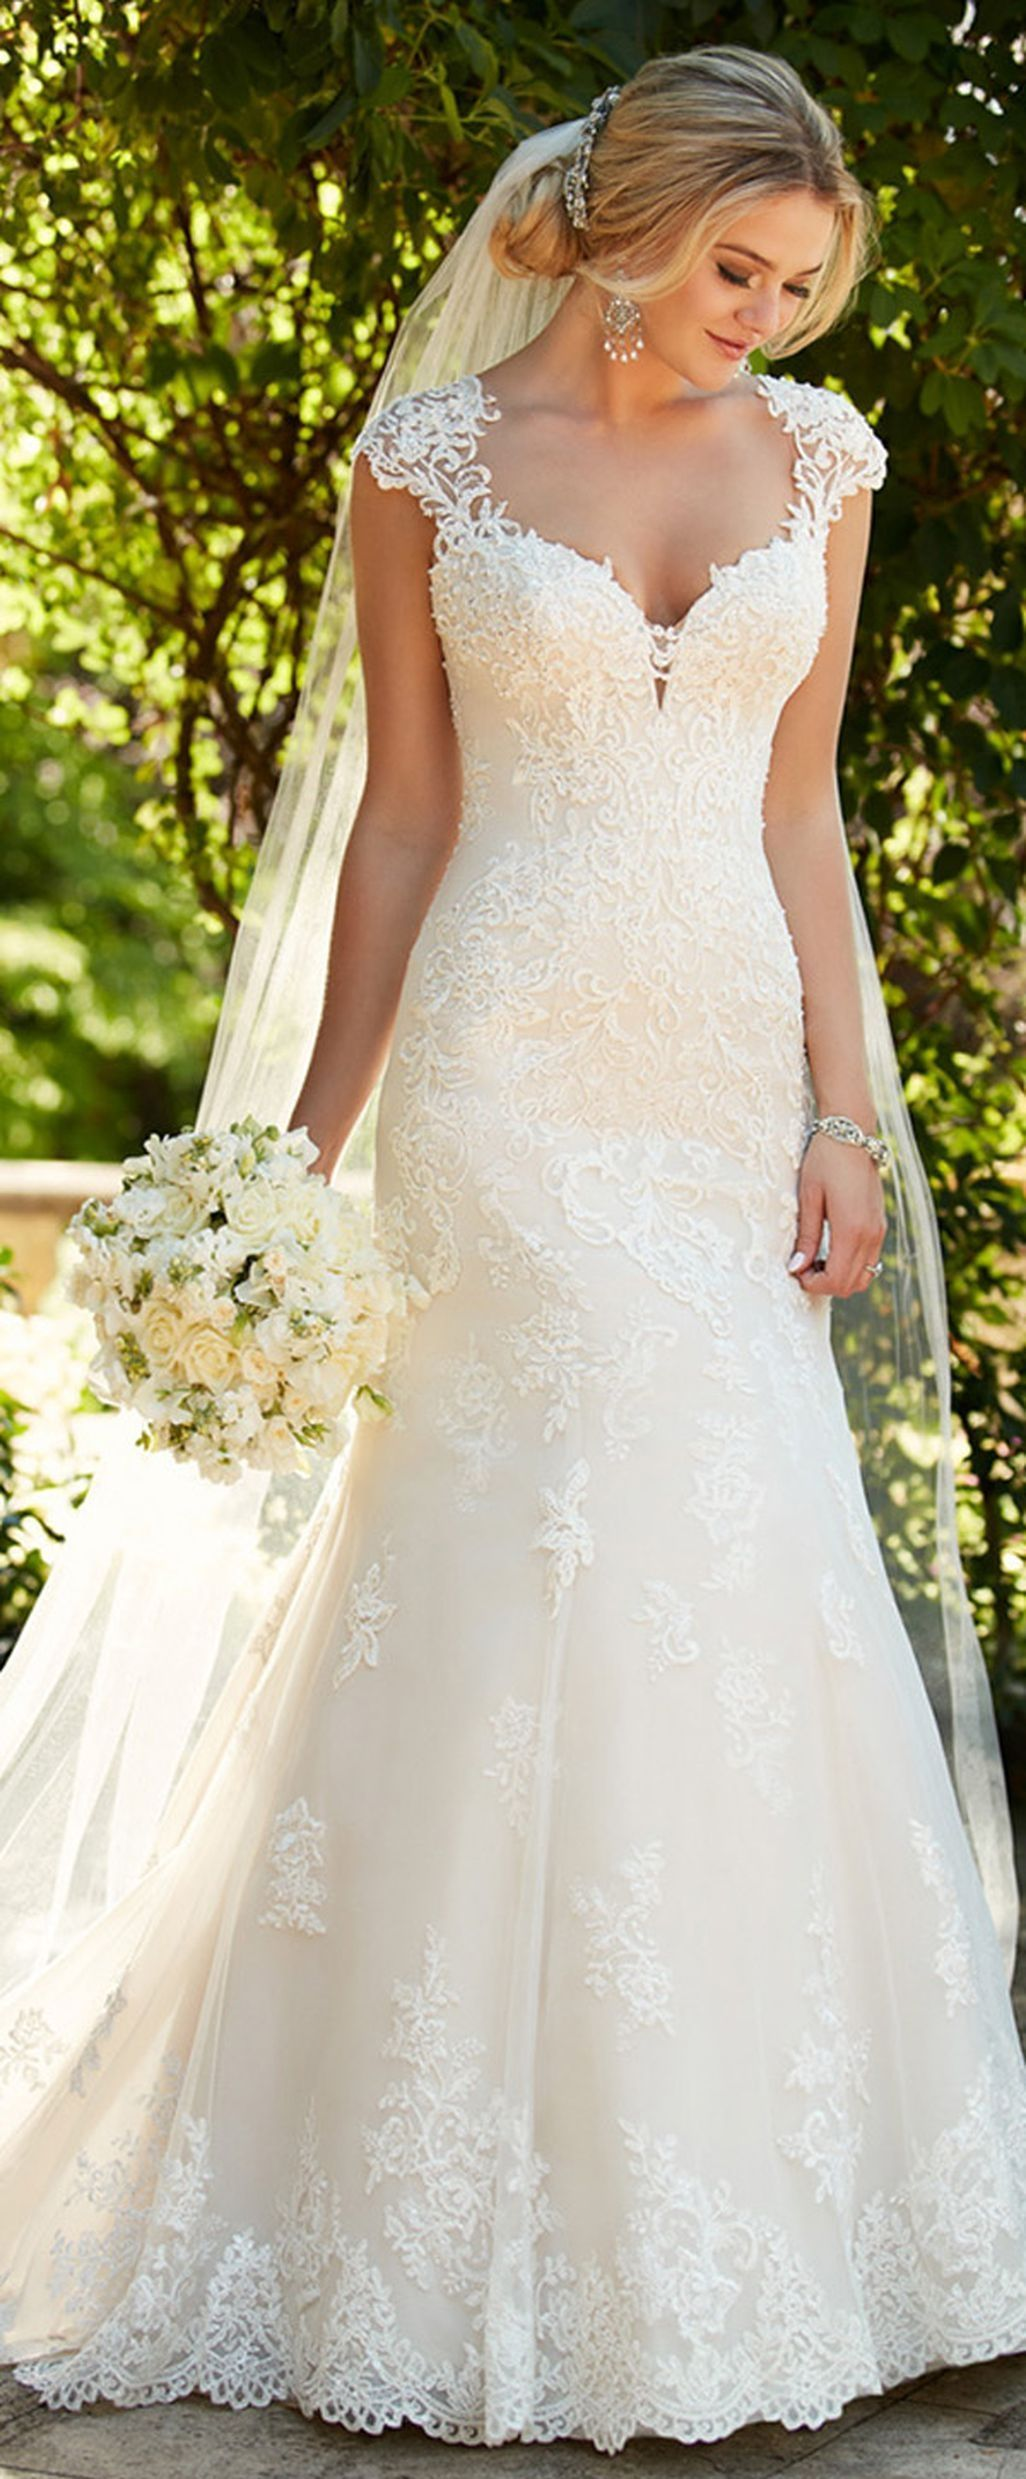 Cool Gorgeous V Neck Tulle Wedding Dress Ideas More at